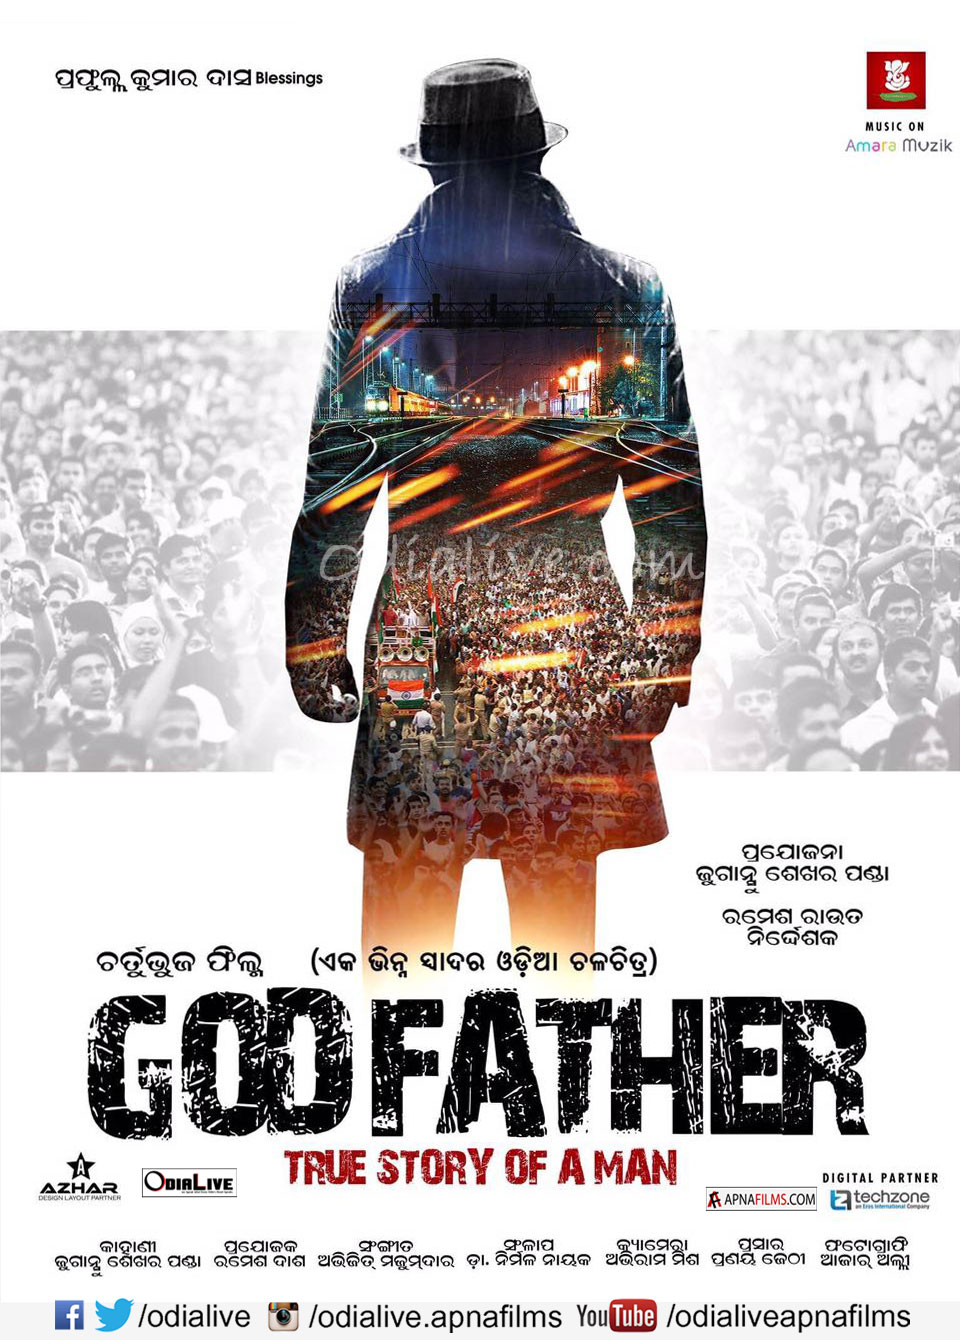 Watch God Father Odia Film trailer 6